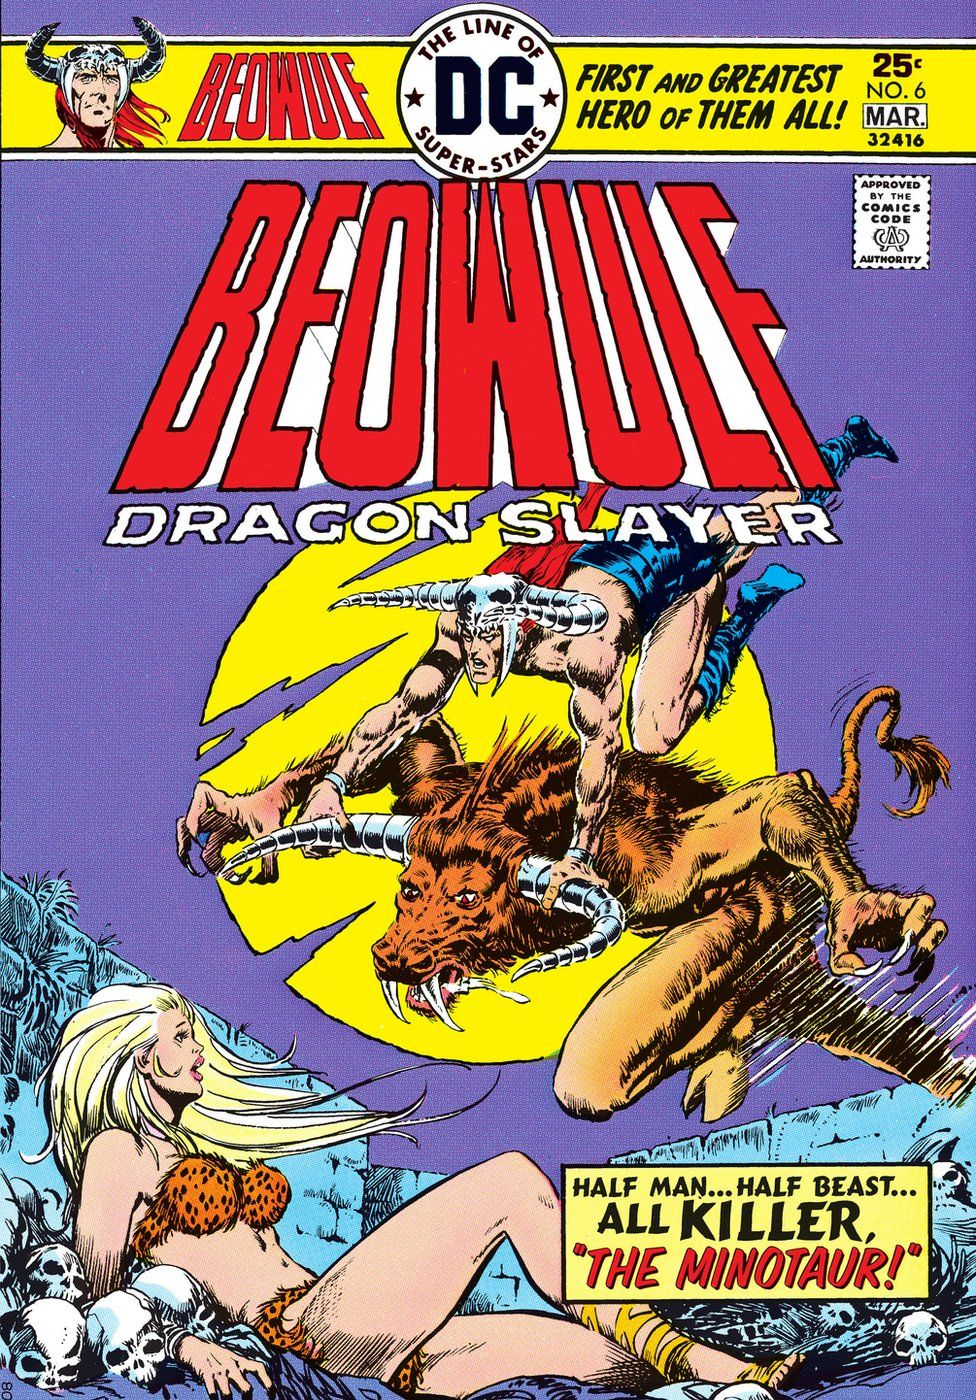 The front of the DC Comic Beowulf Dragon Slayer